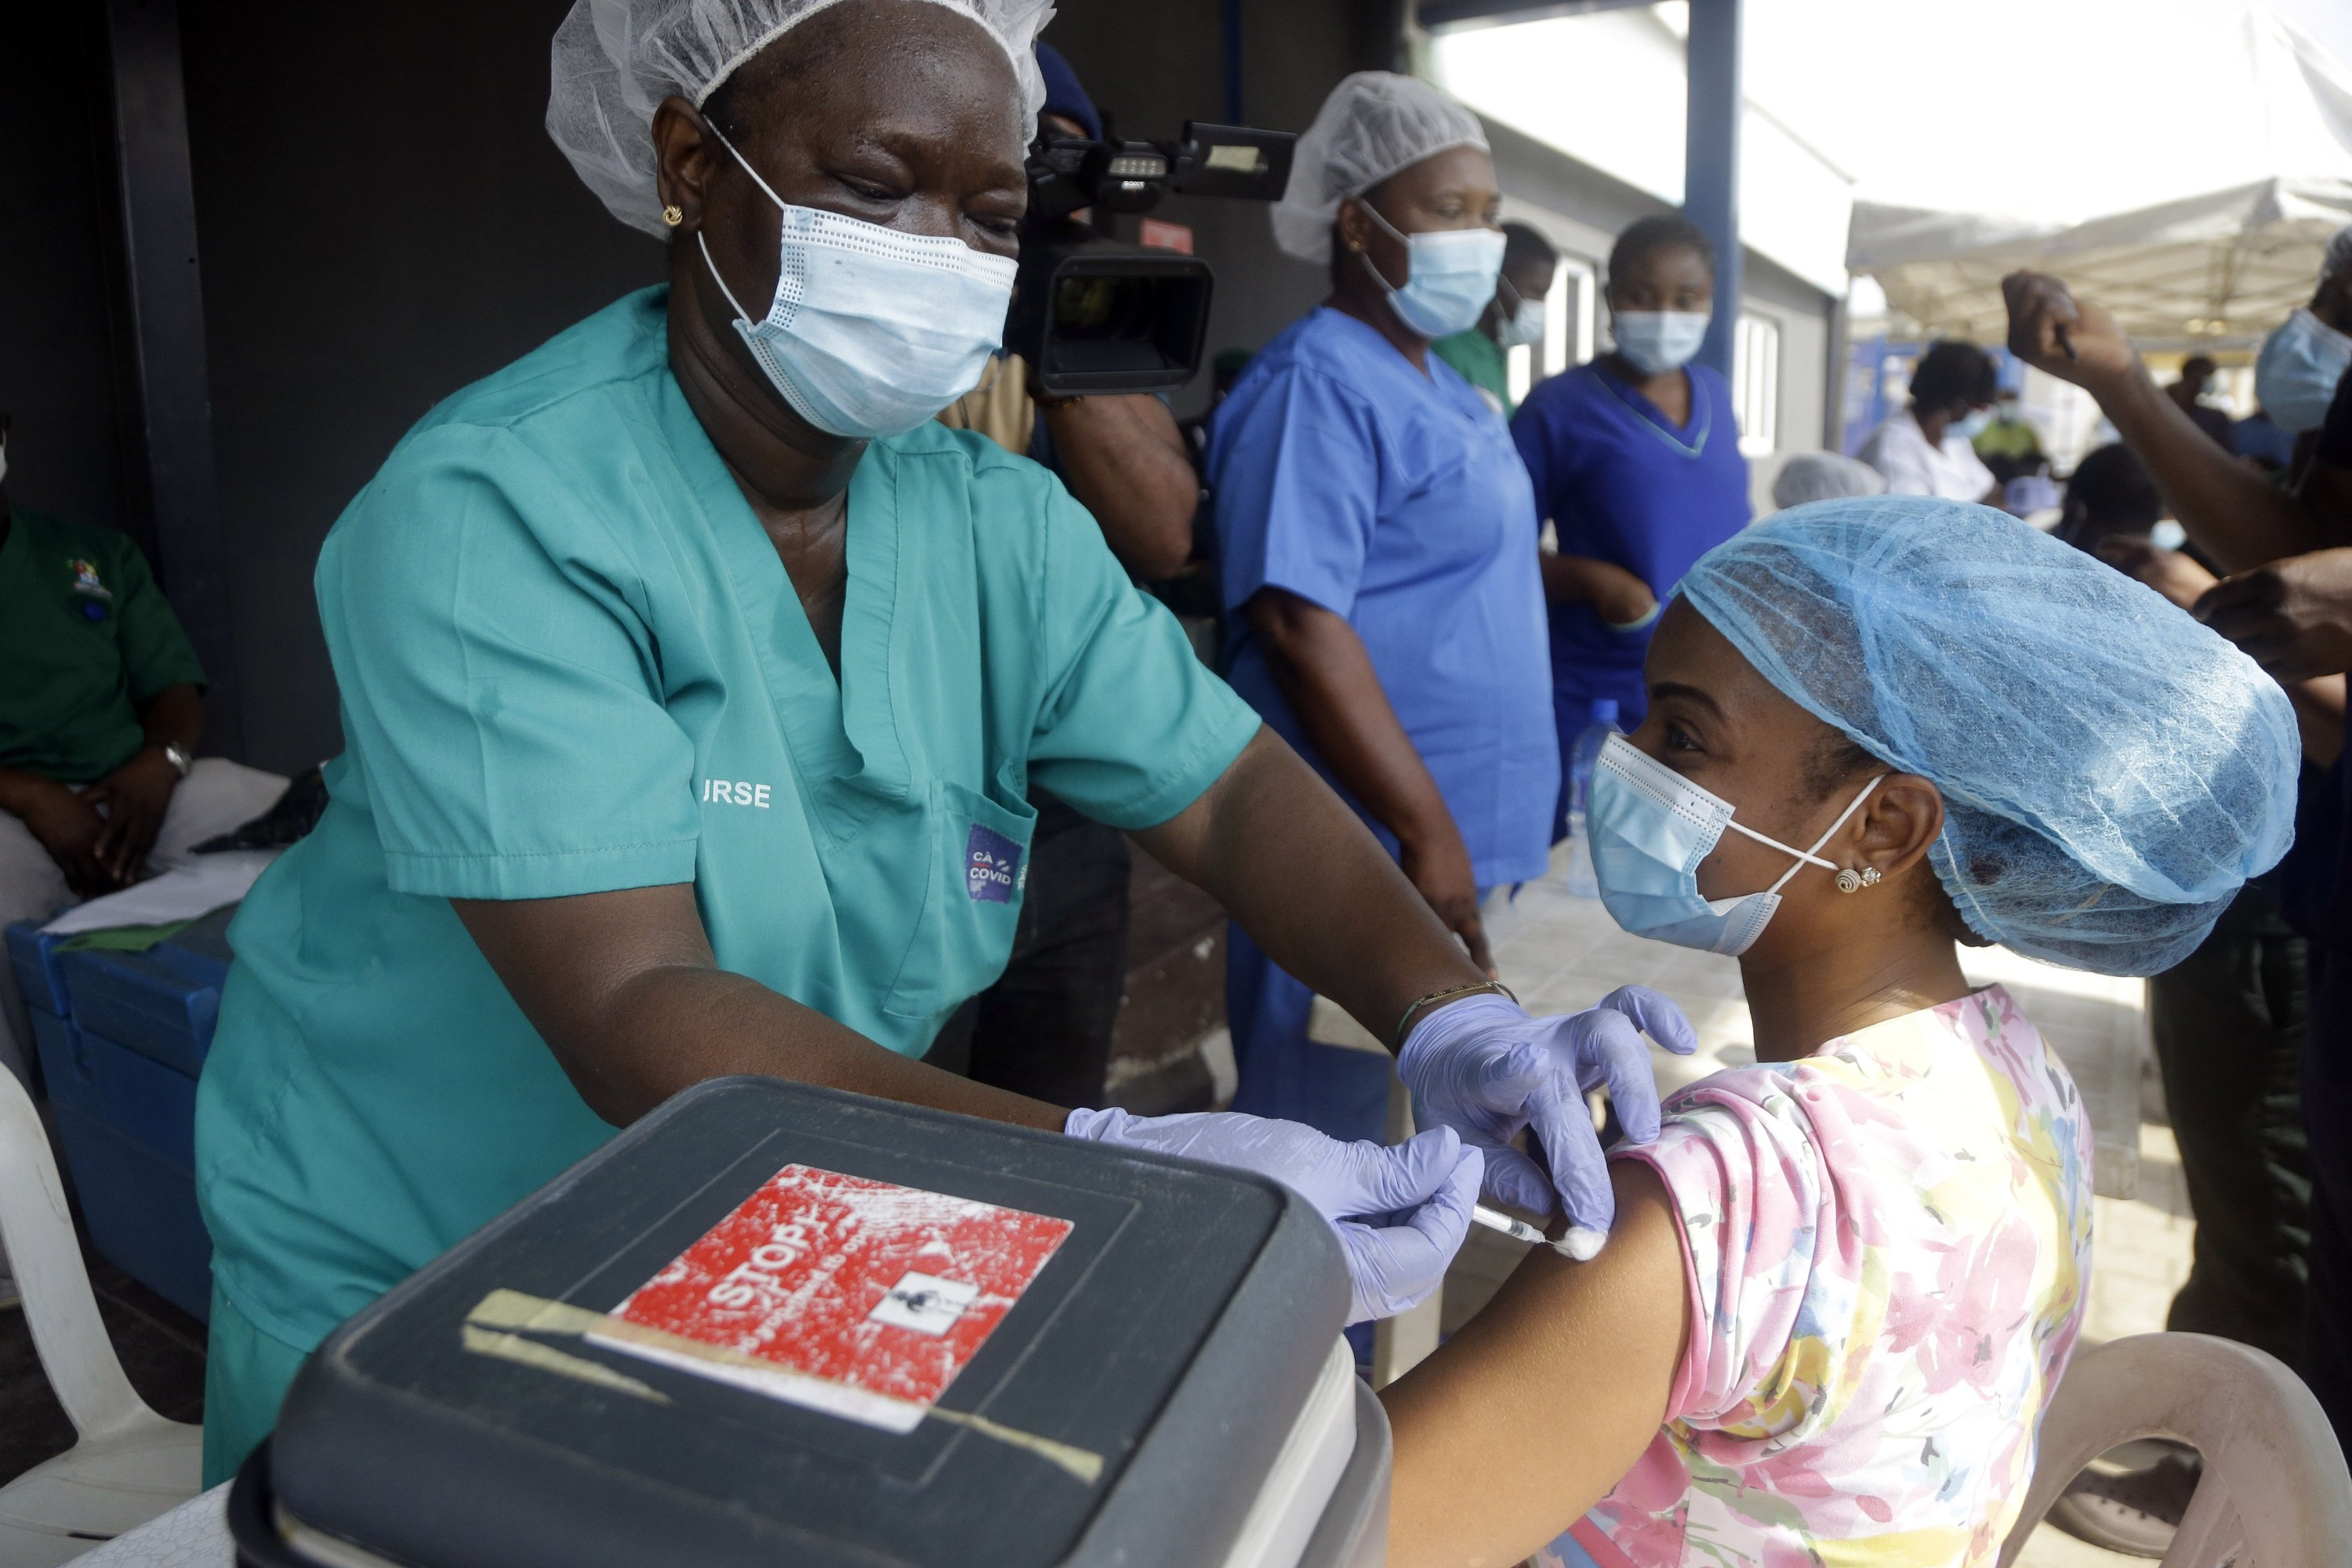 A hospital staff member receives one of the country's first coronavirus vaccinations, using the AstraZeneca vaccine provided through the global COVAX initiative, at Yaba Mainland hospital in Lagos, Nigeria, March 12, 2021. (AP Photo)